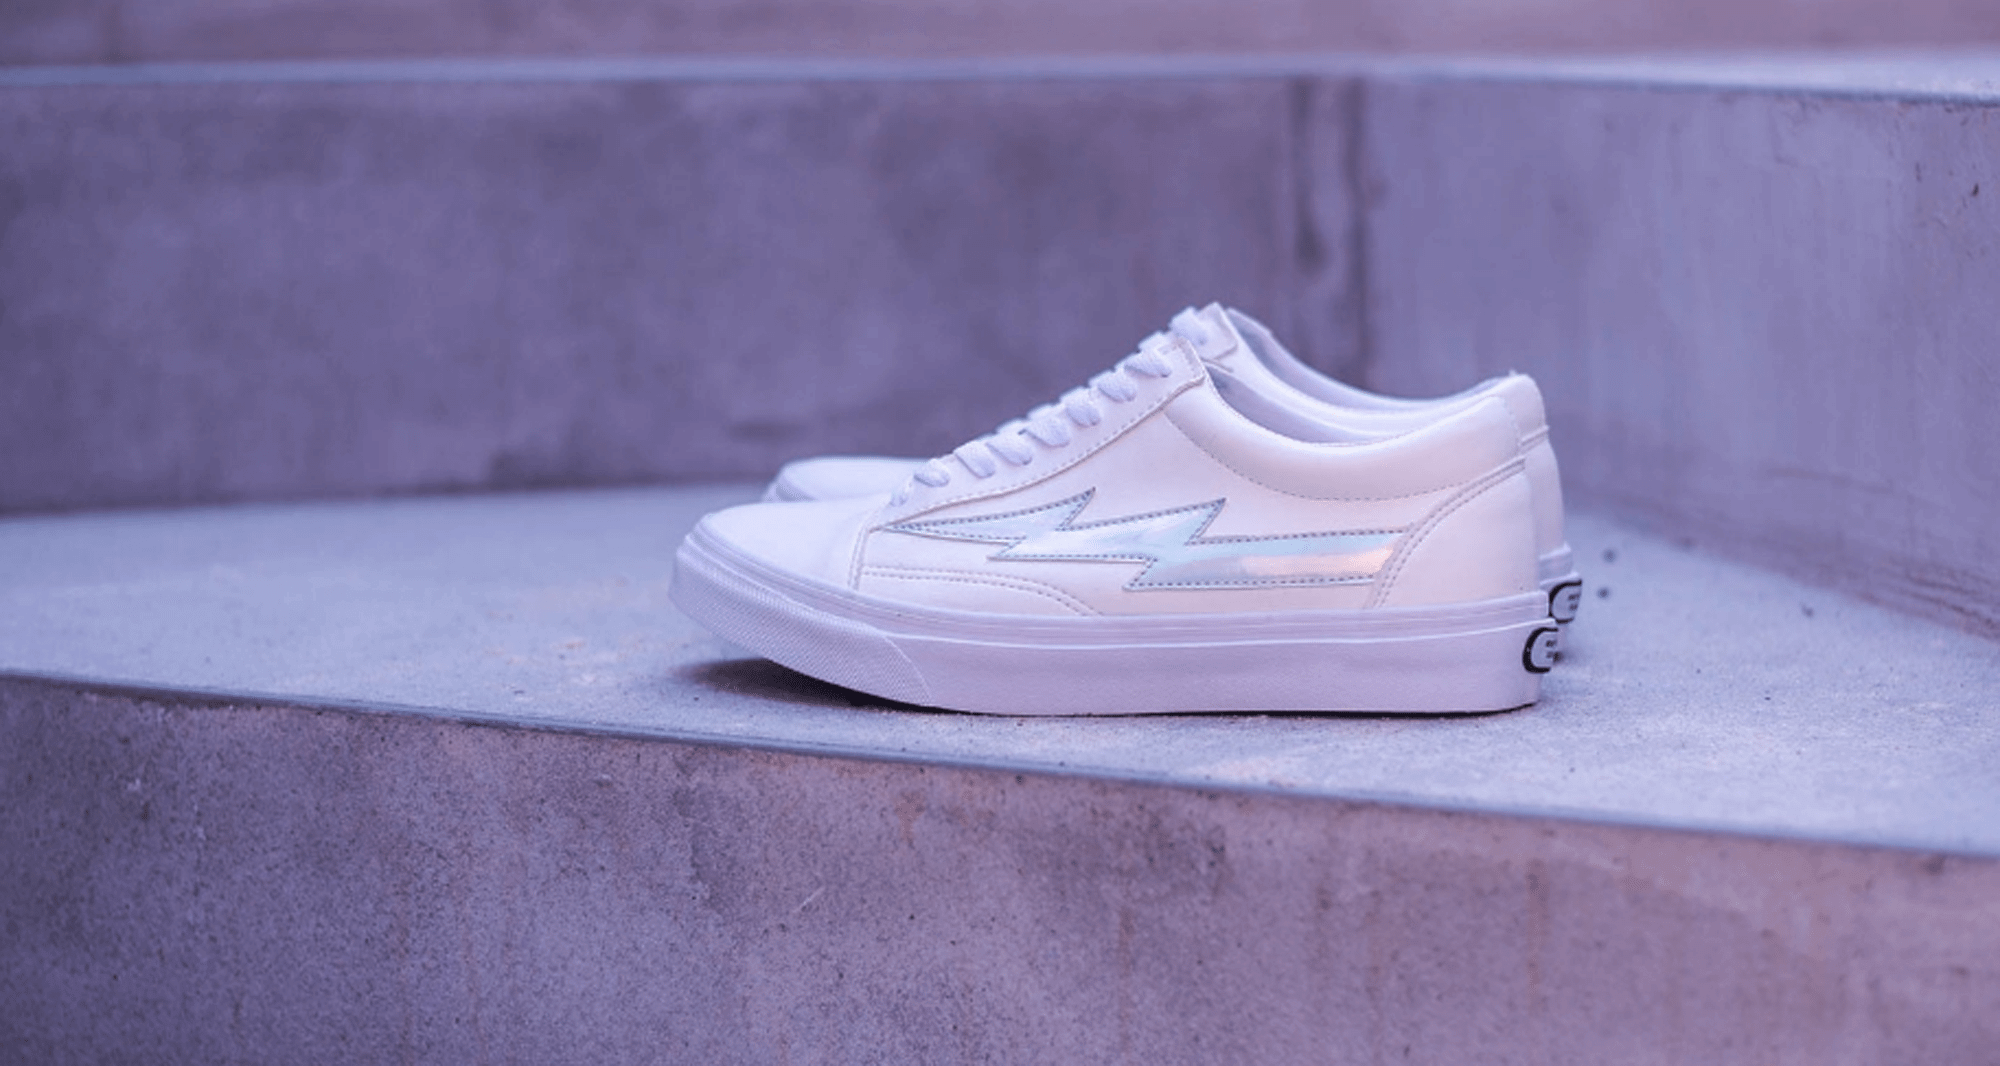 A Closer Look at the Iridescent Revenge x Storm Sneakers  66484ae27